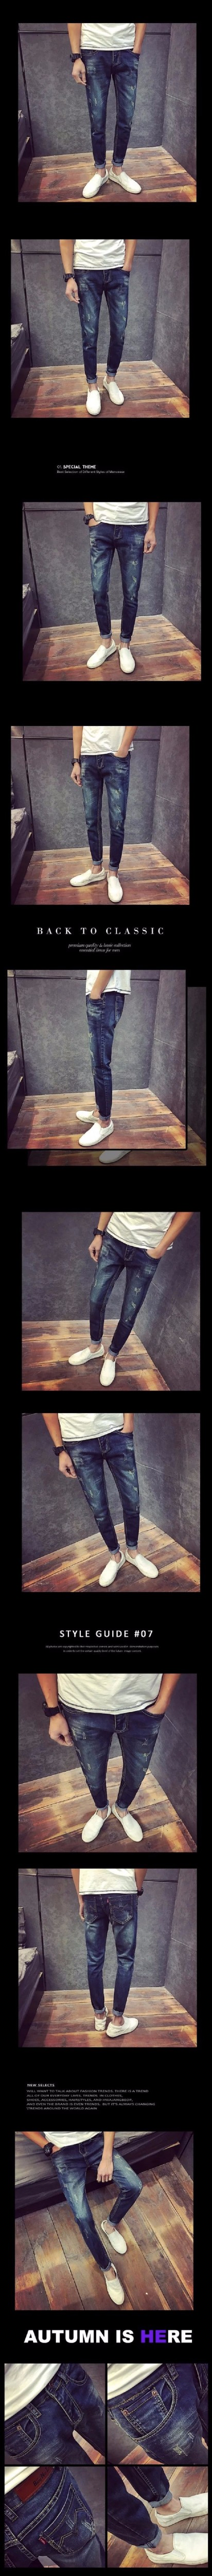 d9735c21171b 2016 Summer fashion new style men `s retro vintage scratched denim pants  tide male street wear slim fit casual jeans trousers